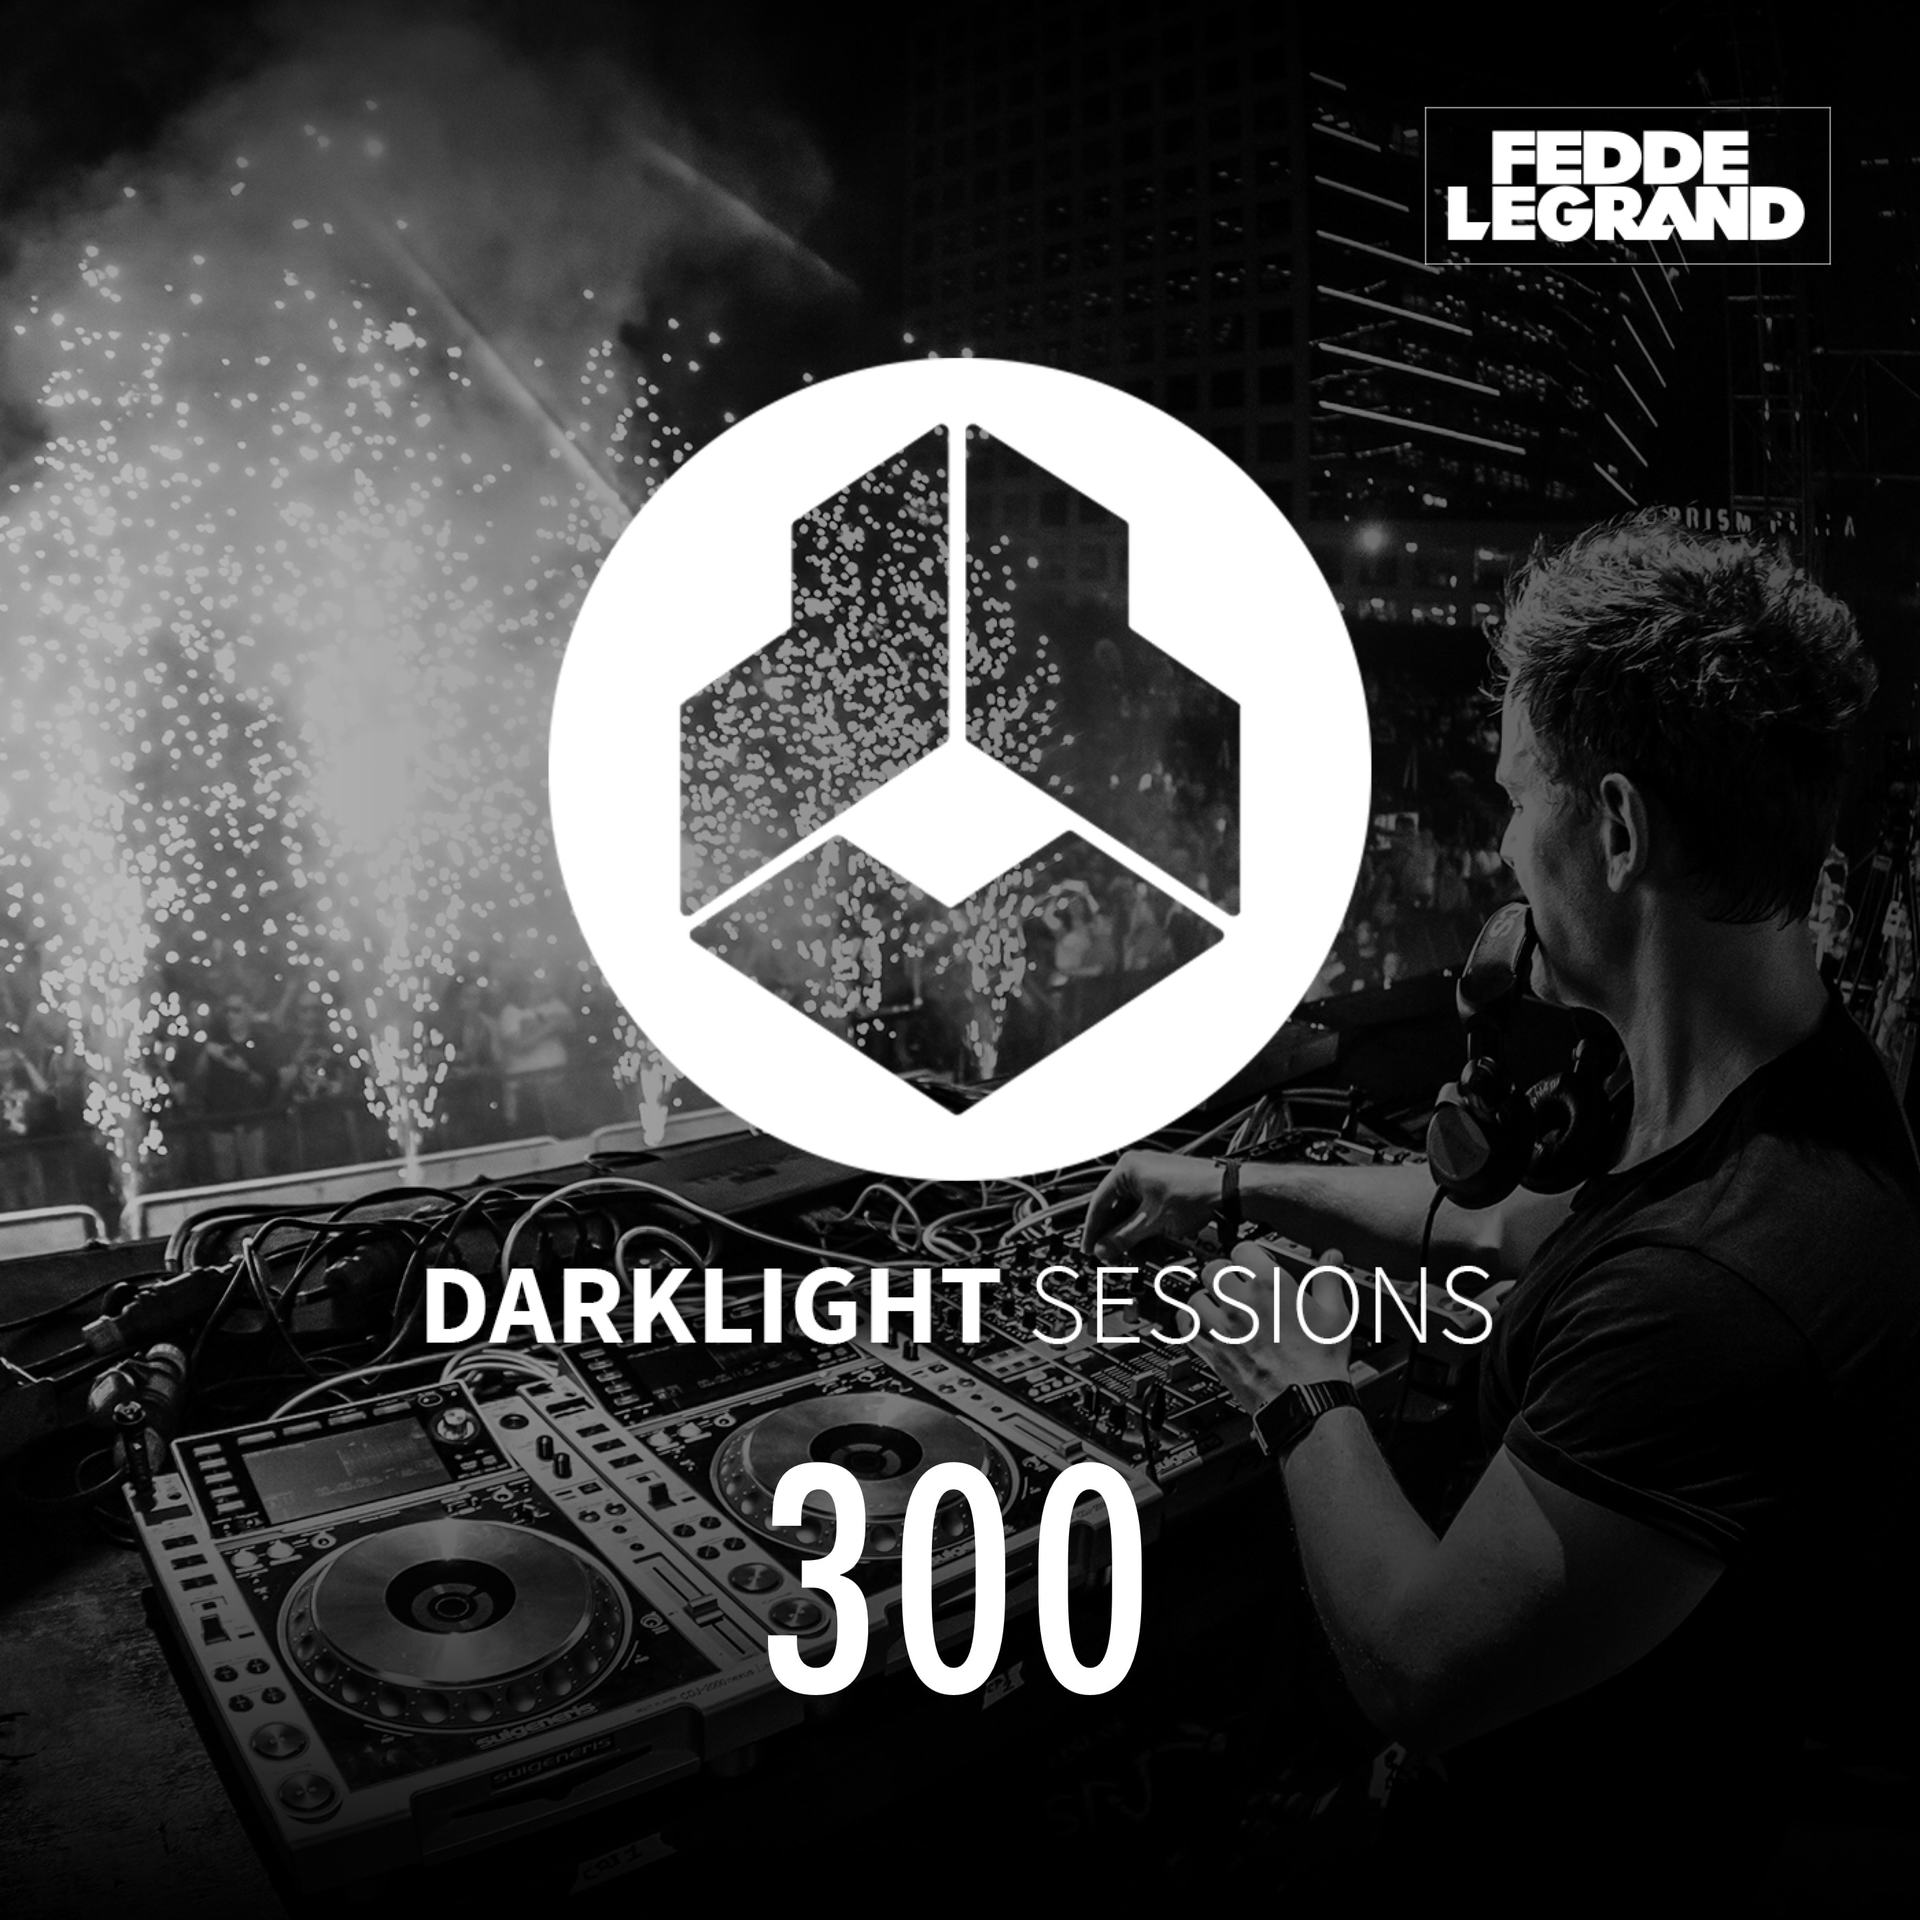 Darklight Sessions 300